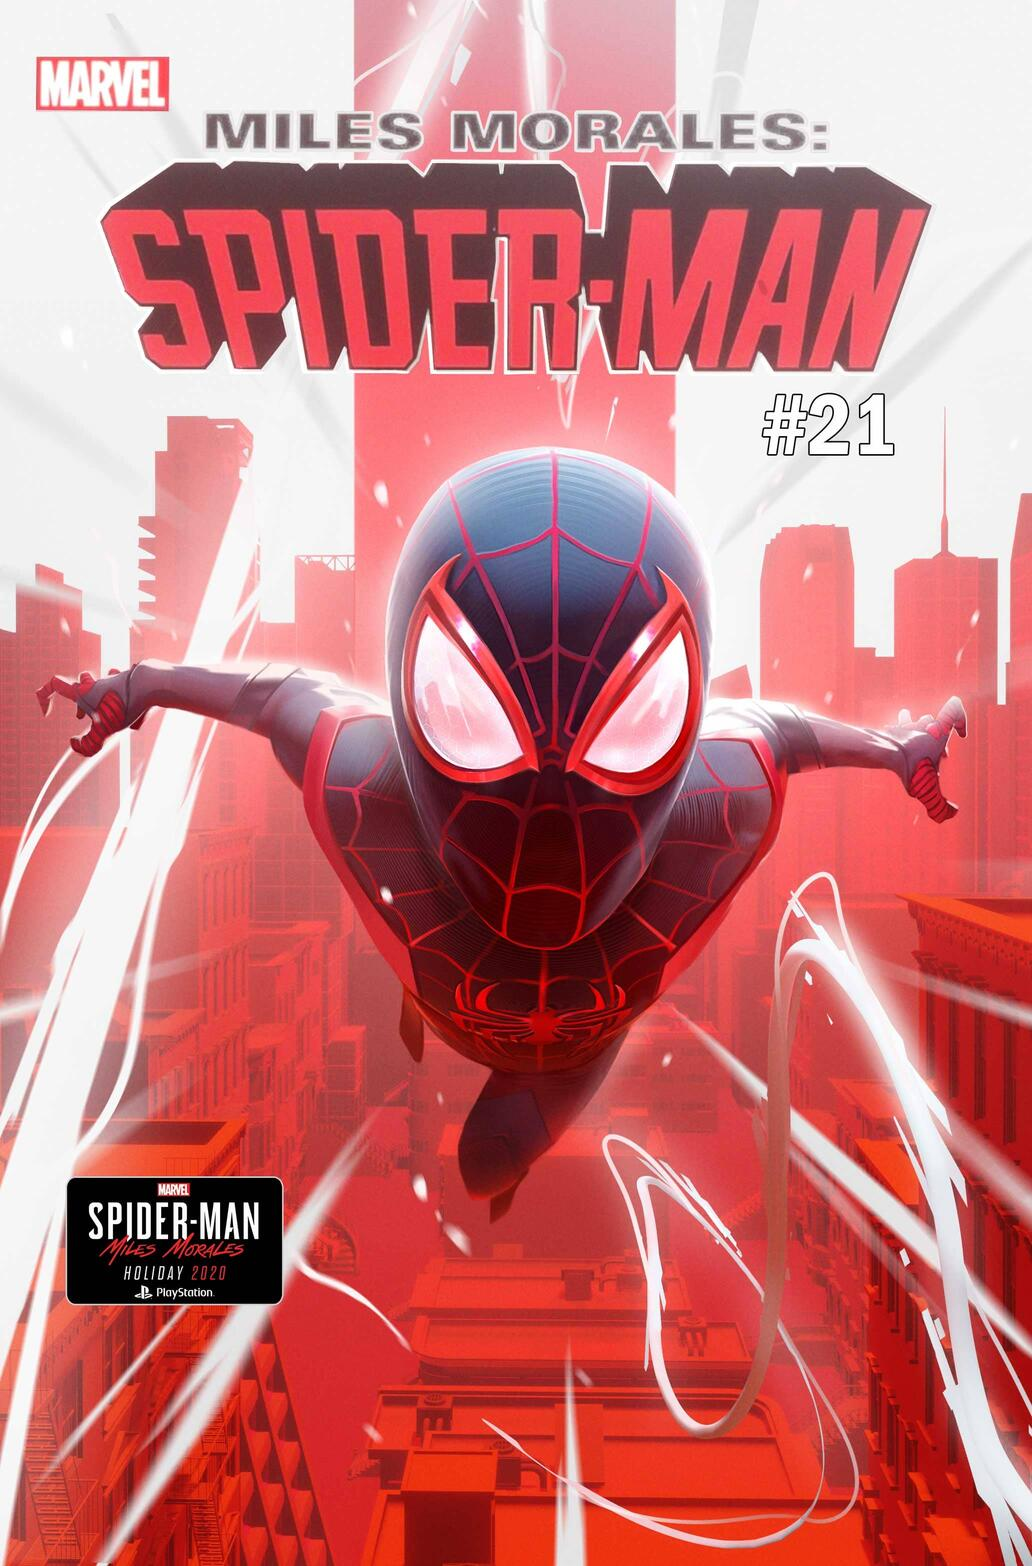 Miles Morales: Spider-Man #21 cover